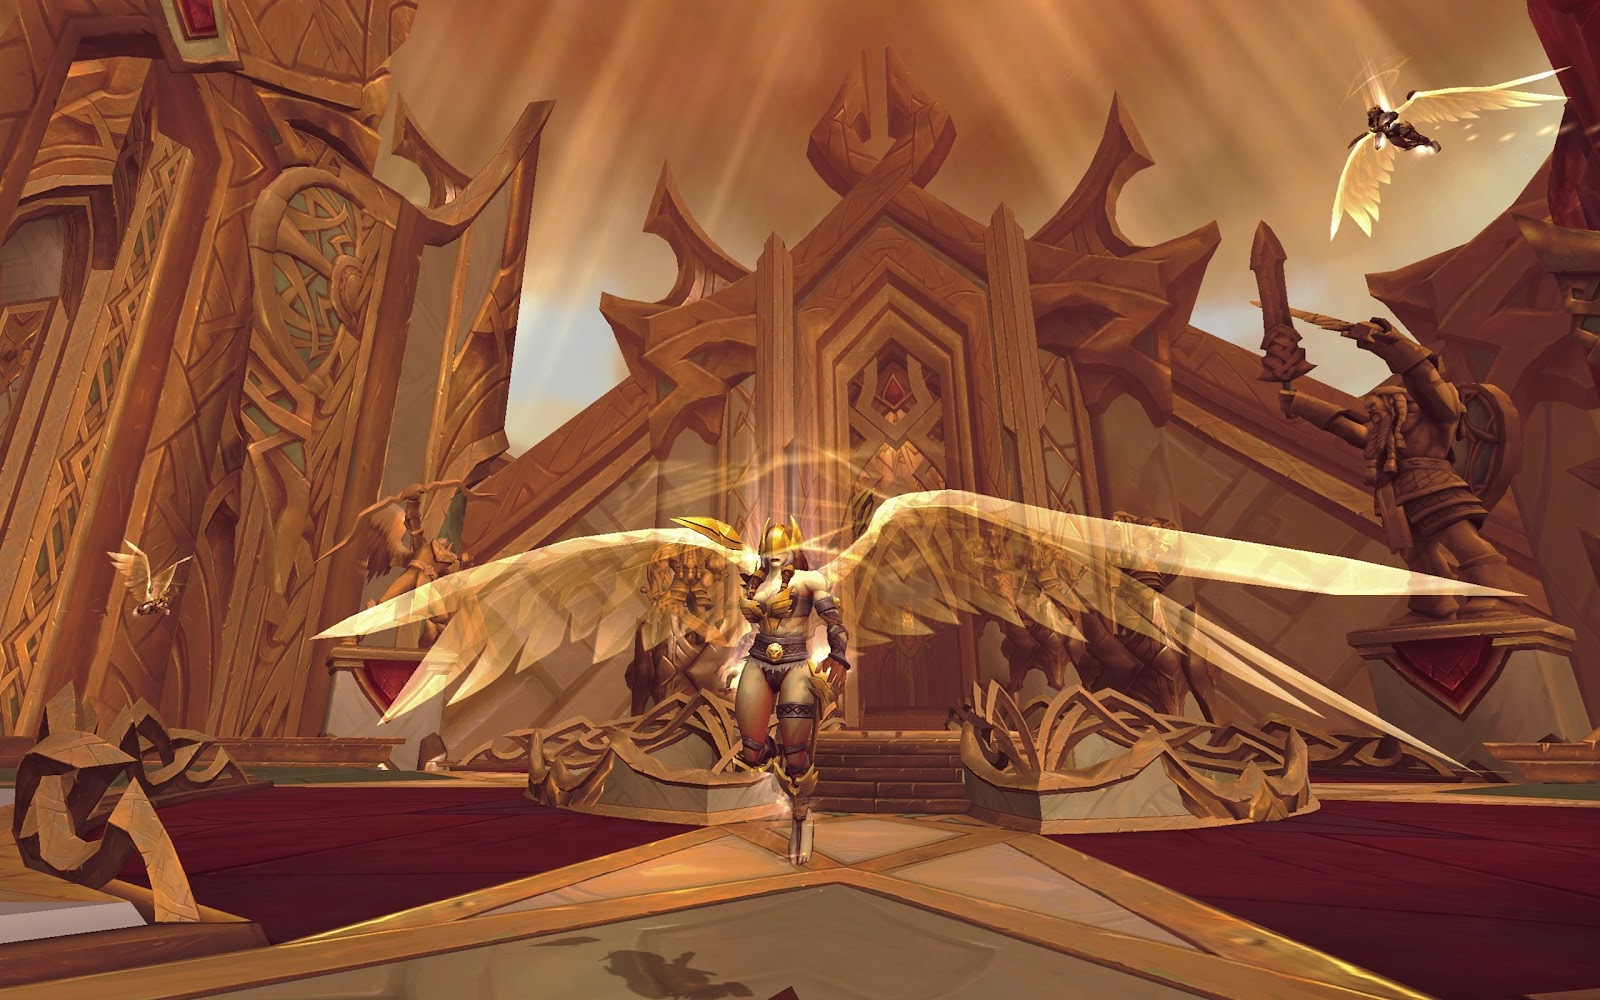 Warrior_Order_Hall_tga_jpgcopy.jpg